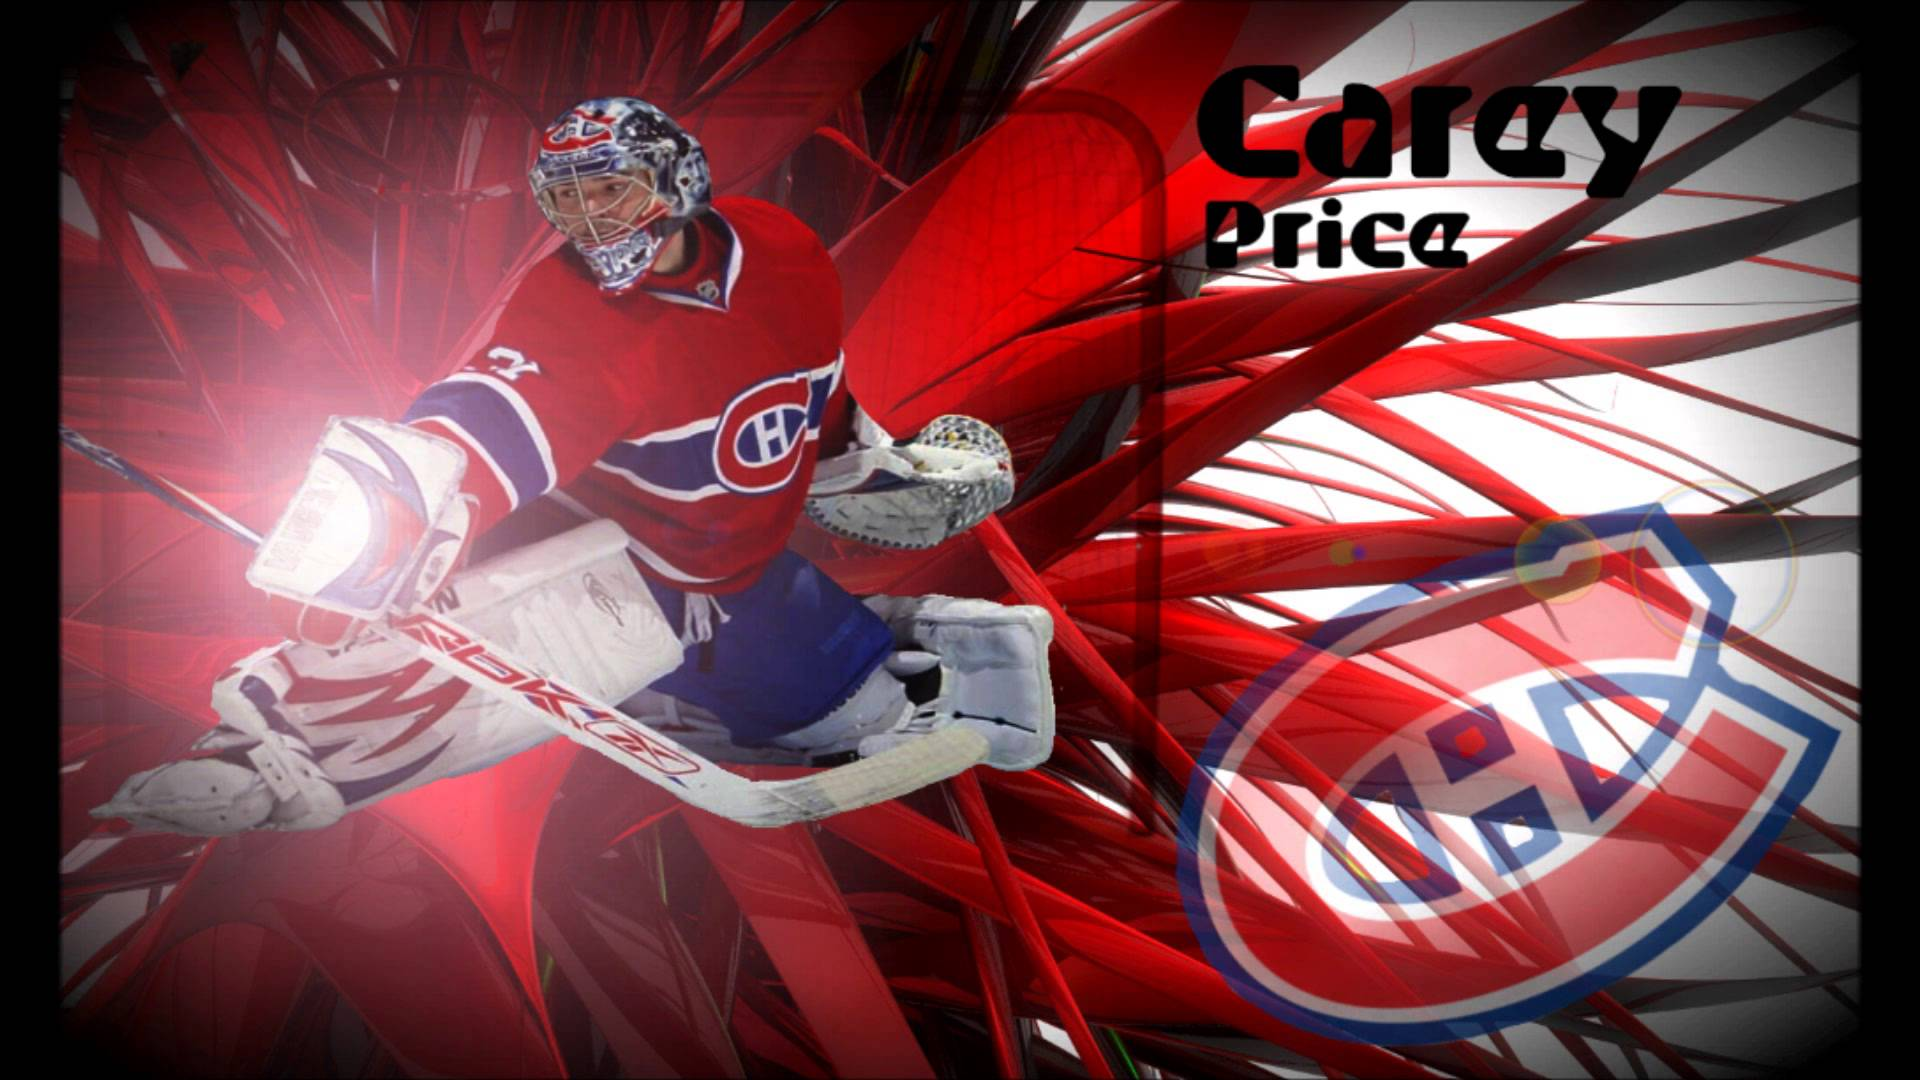 Carey price wallpapers montreal habs montreal hockey 9 html code - 0 Html Code Carey Price Wallpapers Montreal Habs Montreal Hockey 16 Free